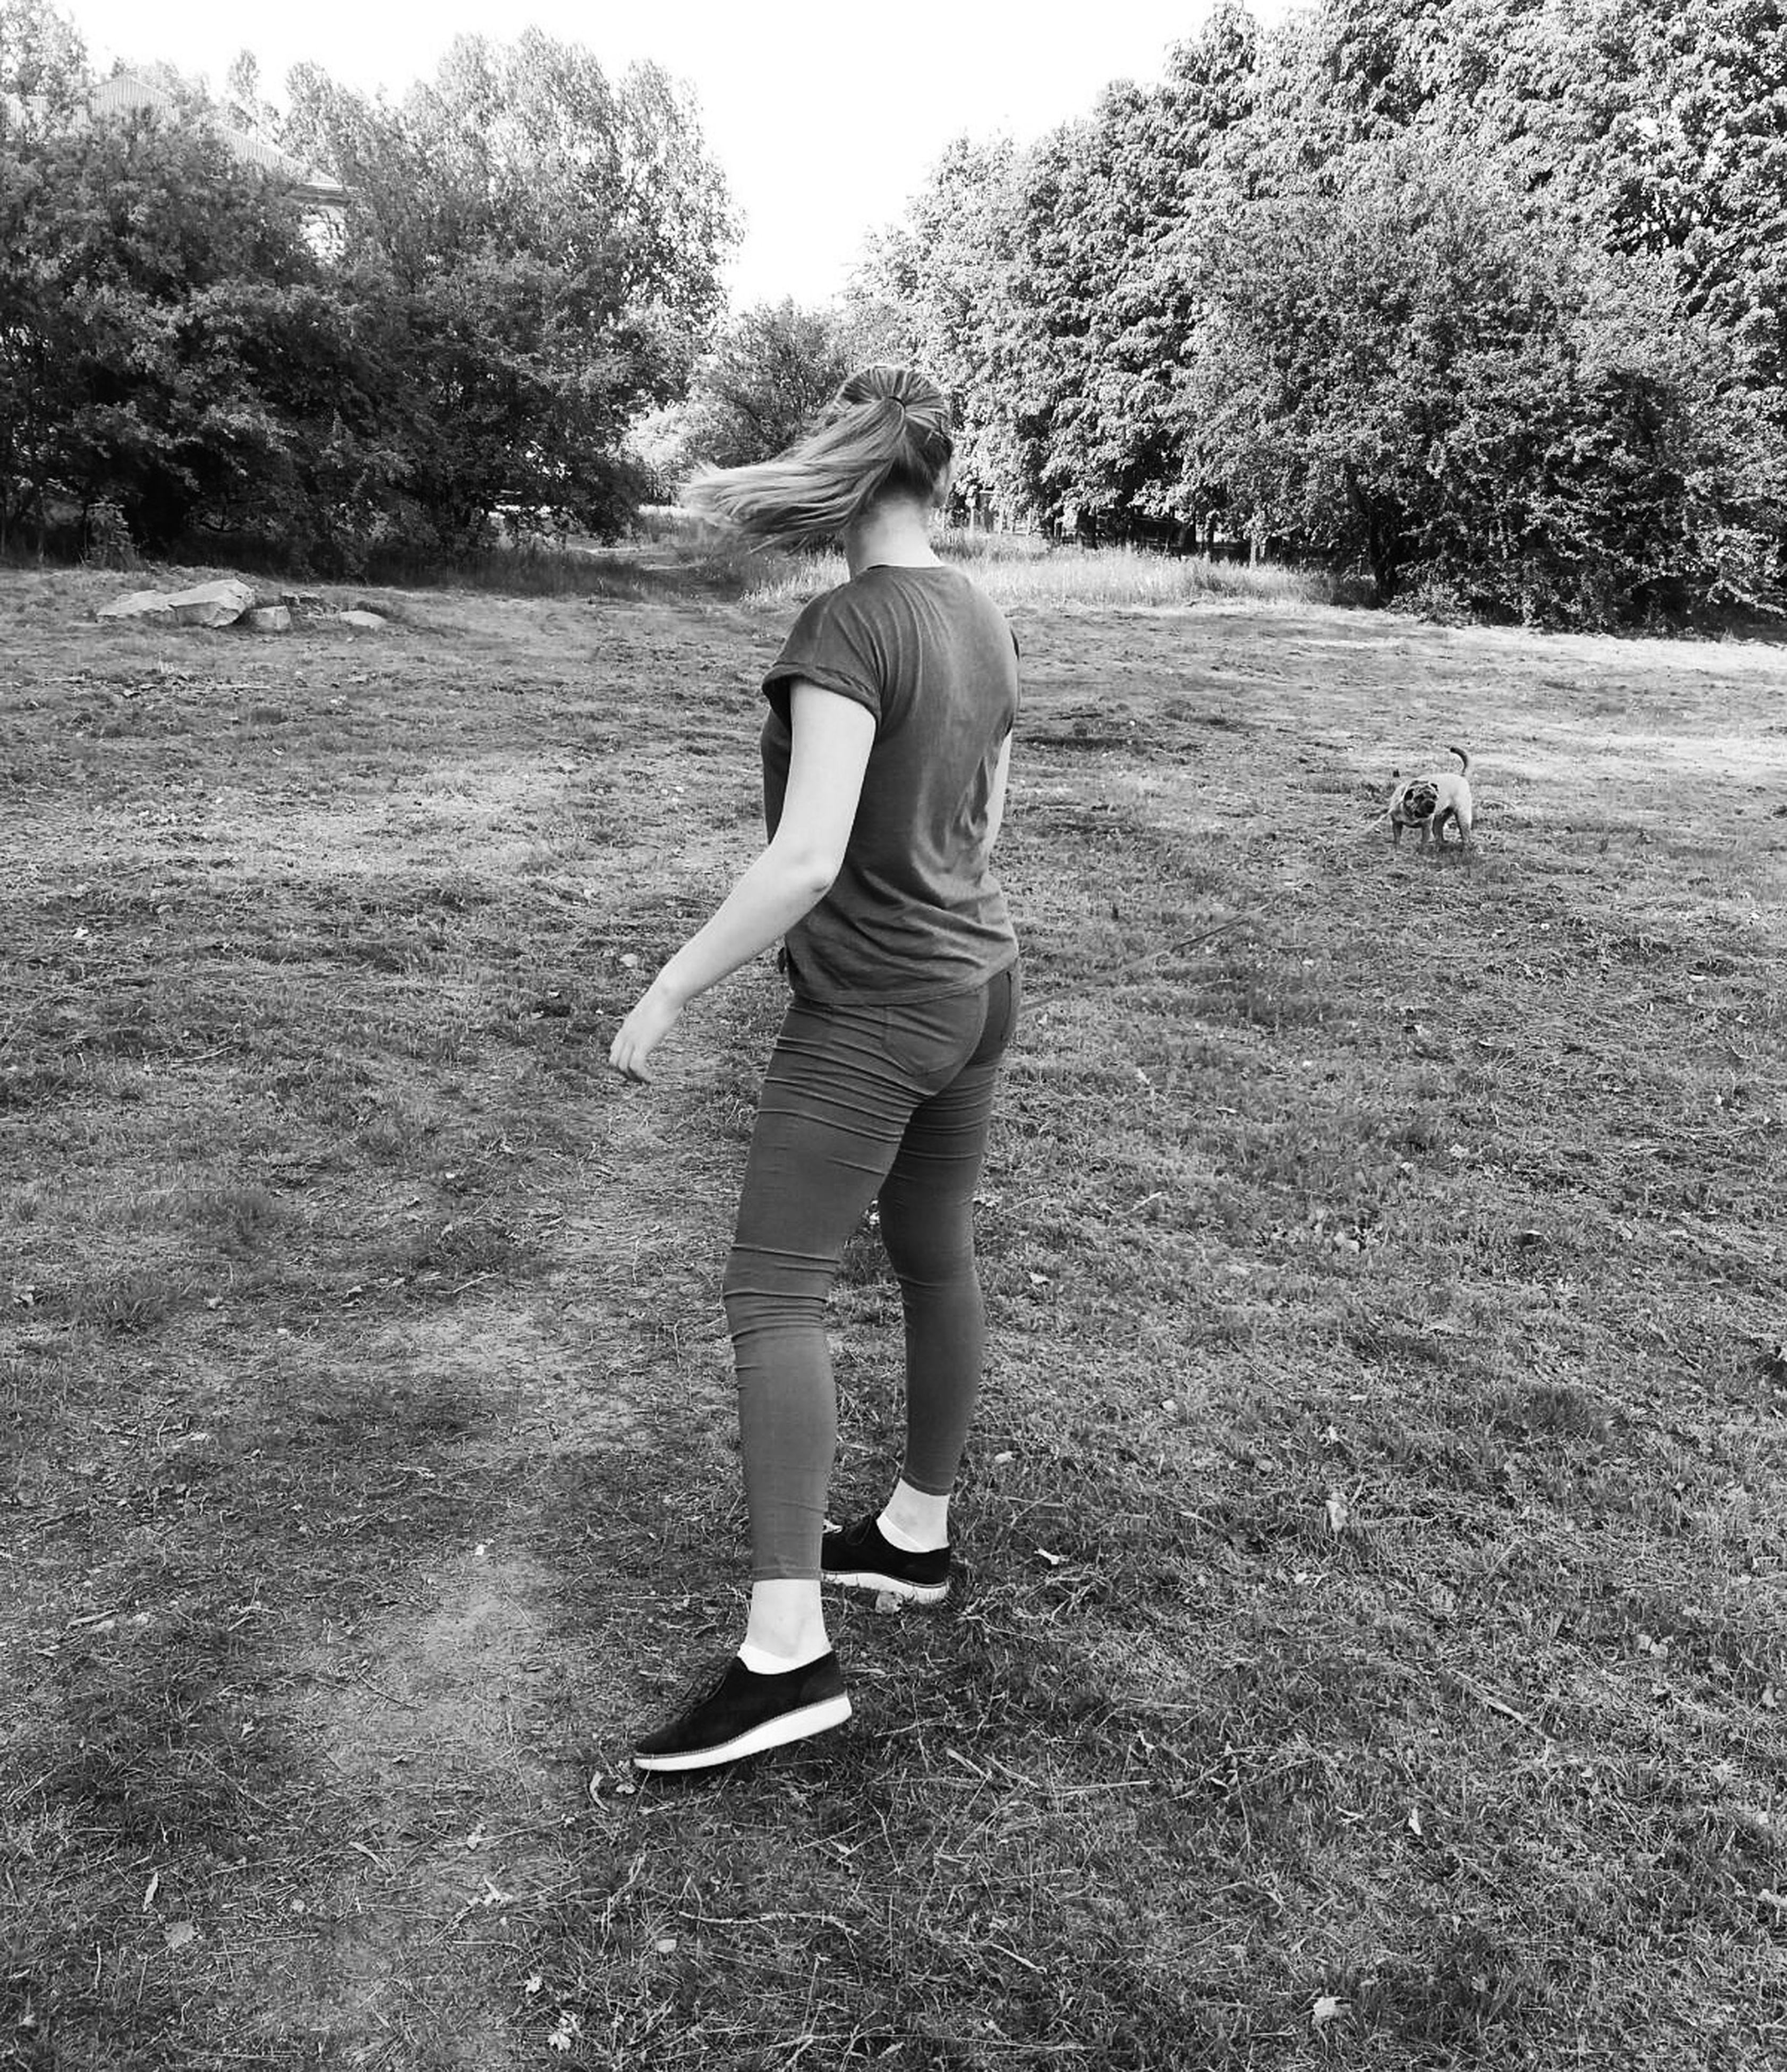 full length, childhood, tree, lifestyles, person, casual clothing, elementary age, leisure activity, grass, boys, girls, innocence, field, park - man made space, playing, playful, cute, day